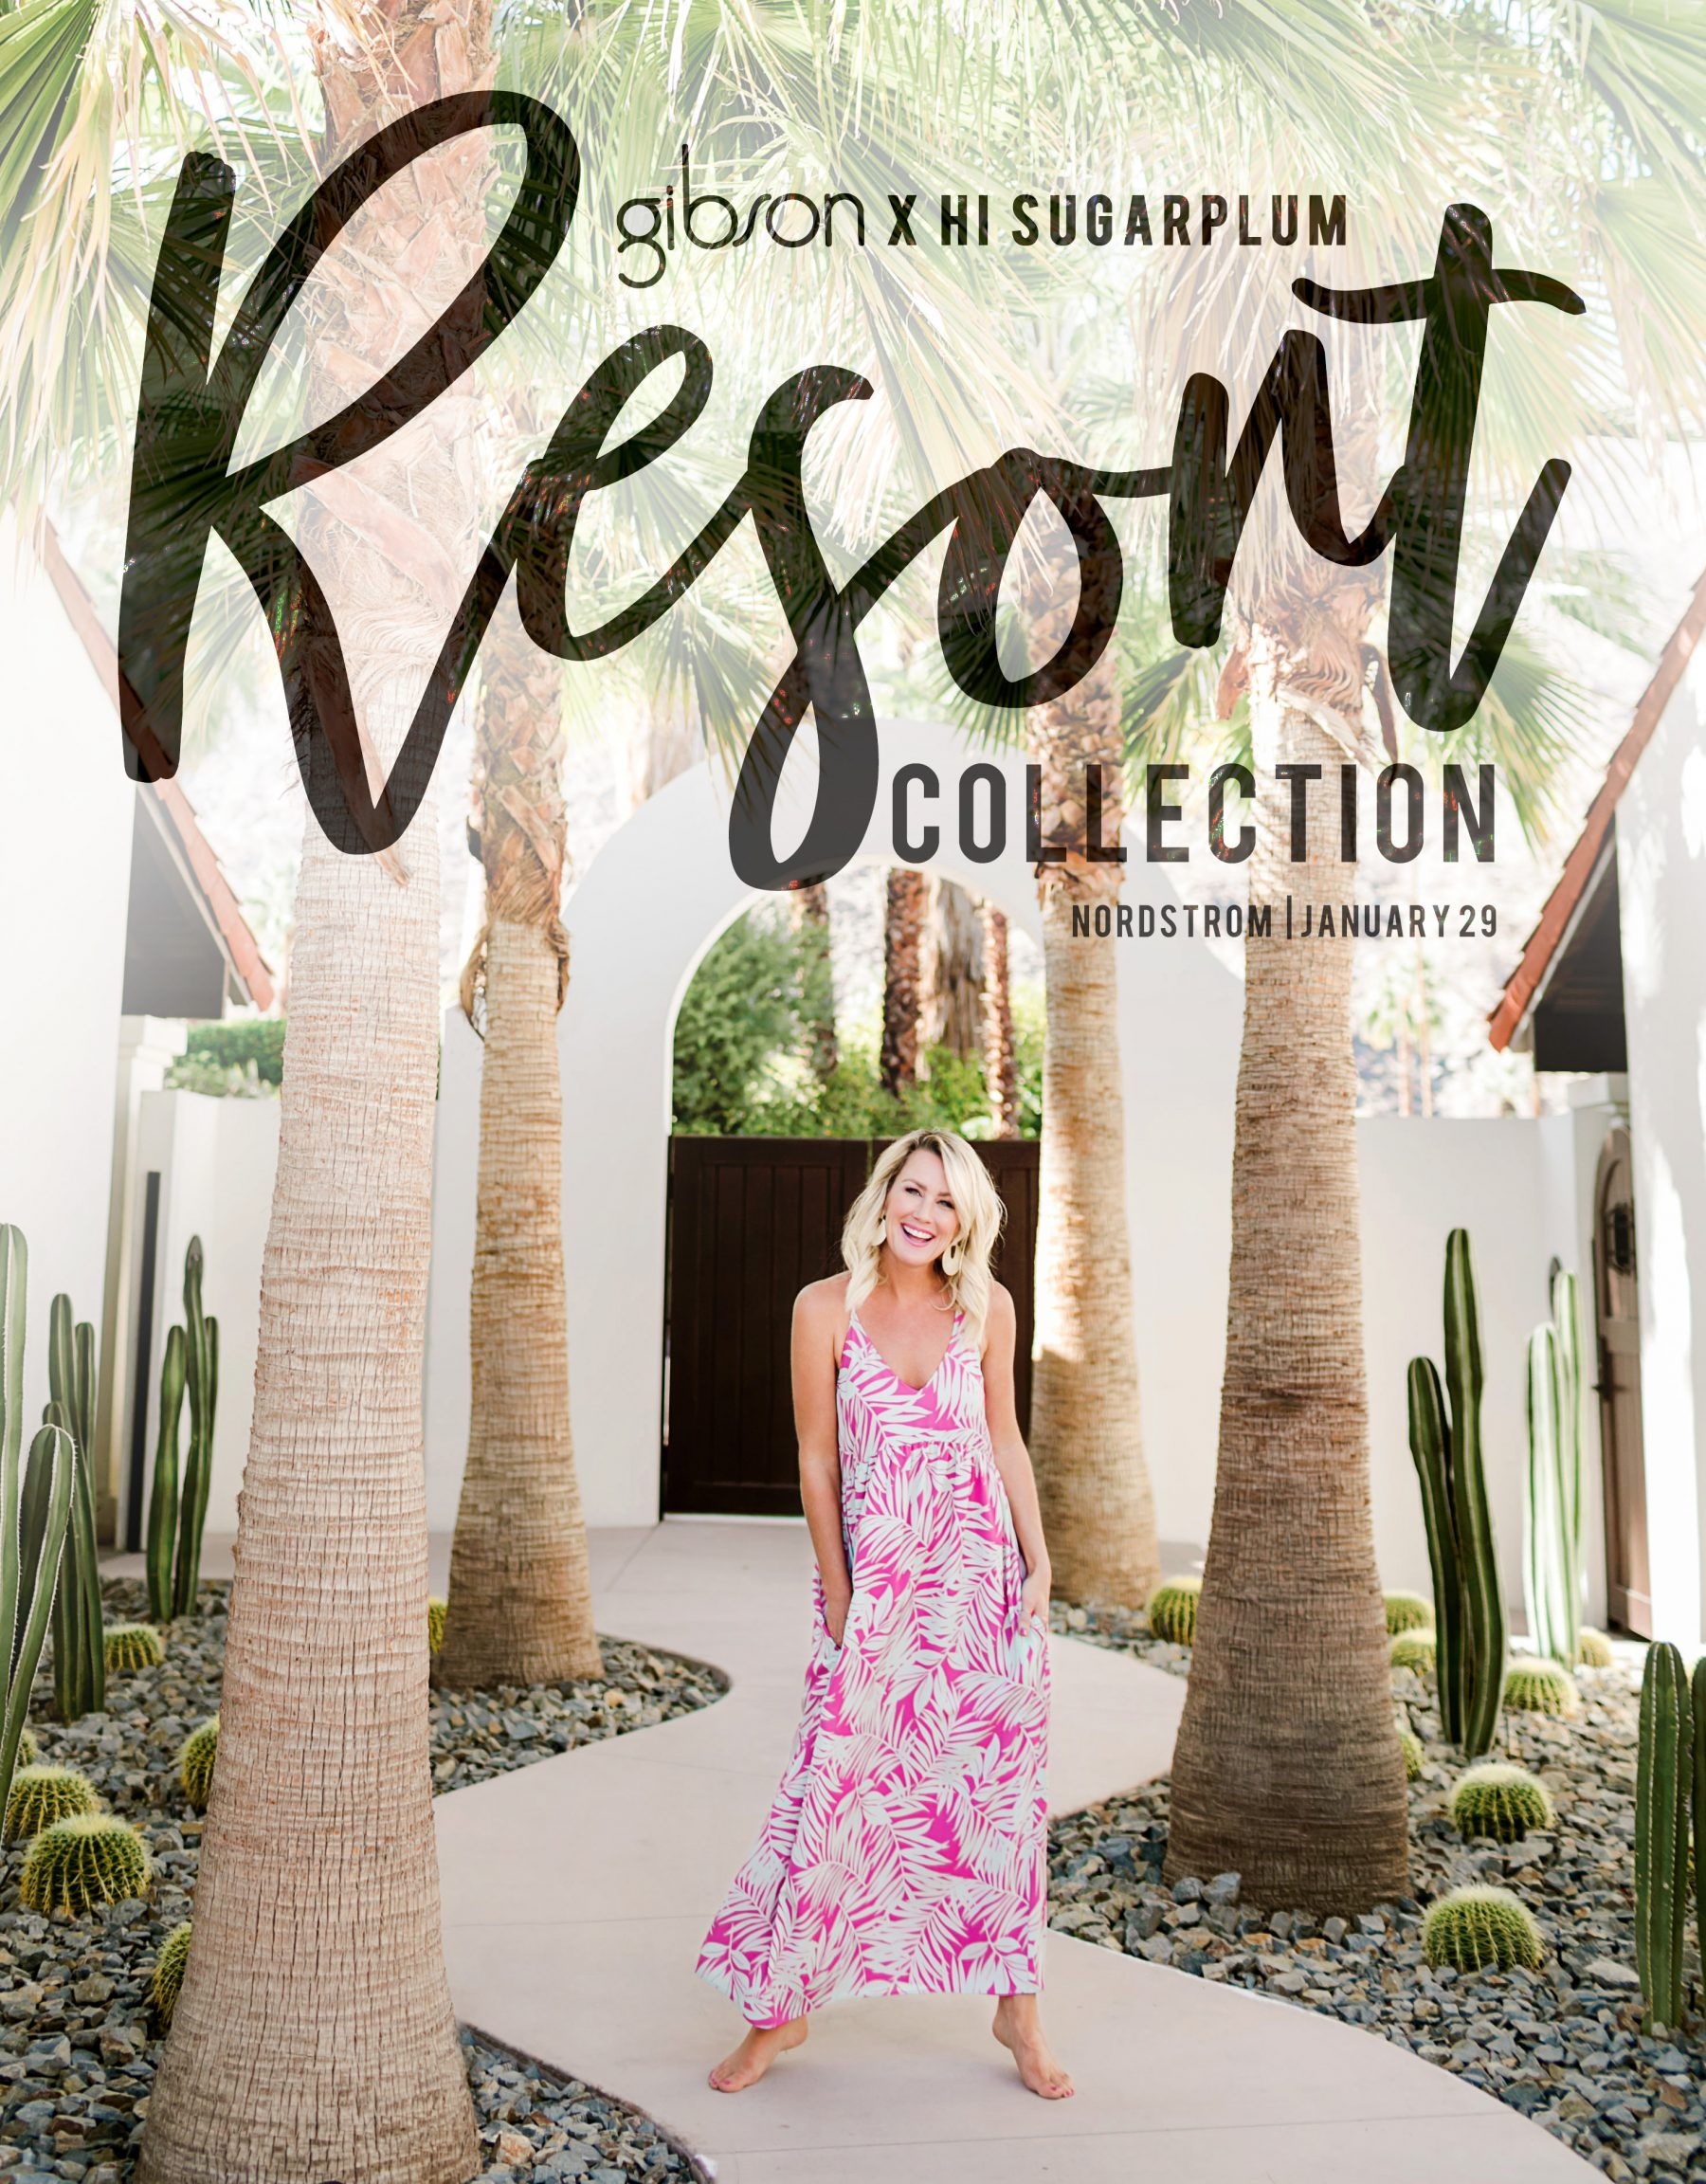 Introducing the Gibson x Hi Sugarplum Resort Collection!